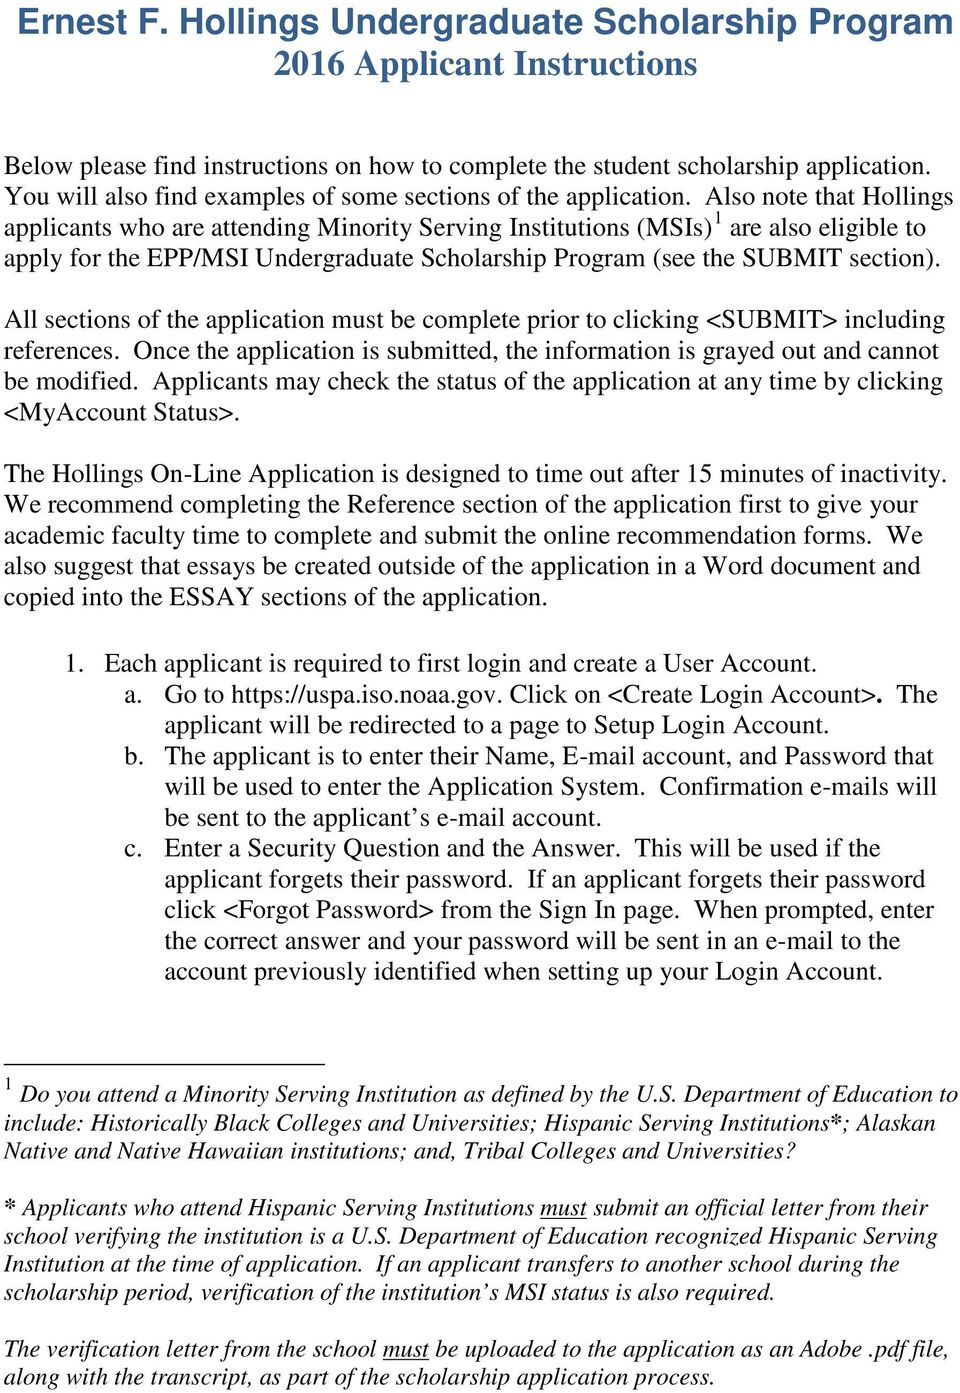 Also note that Hollings applicants who are attending Minority Serving Institutions (MSIs) 1 are also eligible to apply for the EPP/MSI Undergraduate Scholarship Program (see the SUBMIT section).